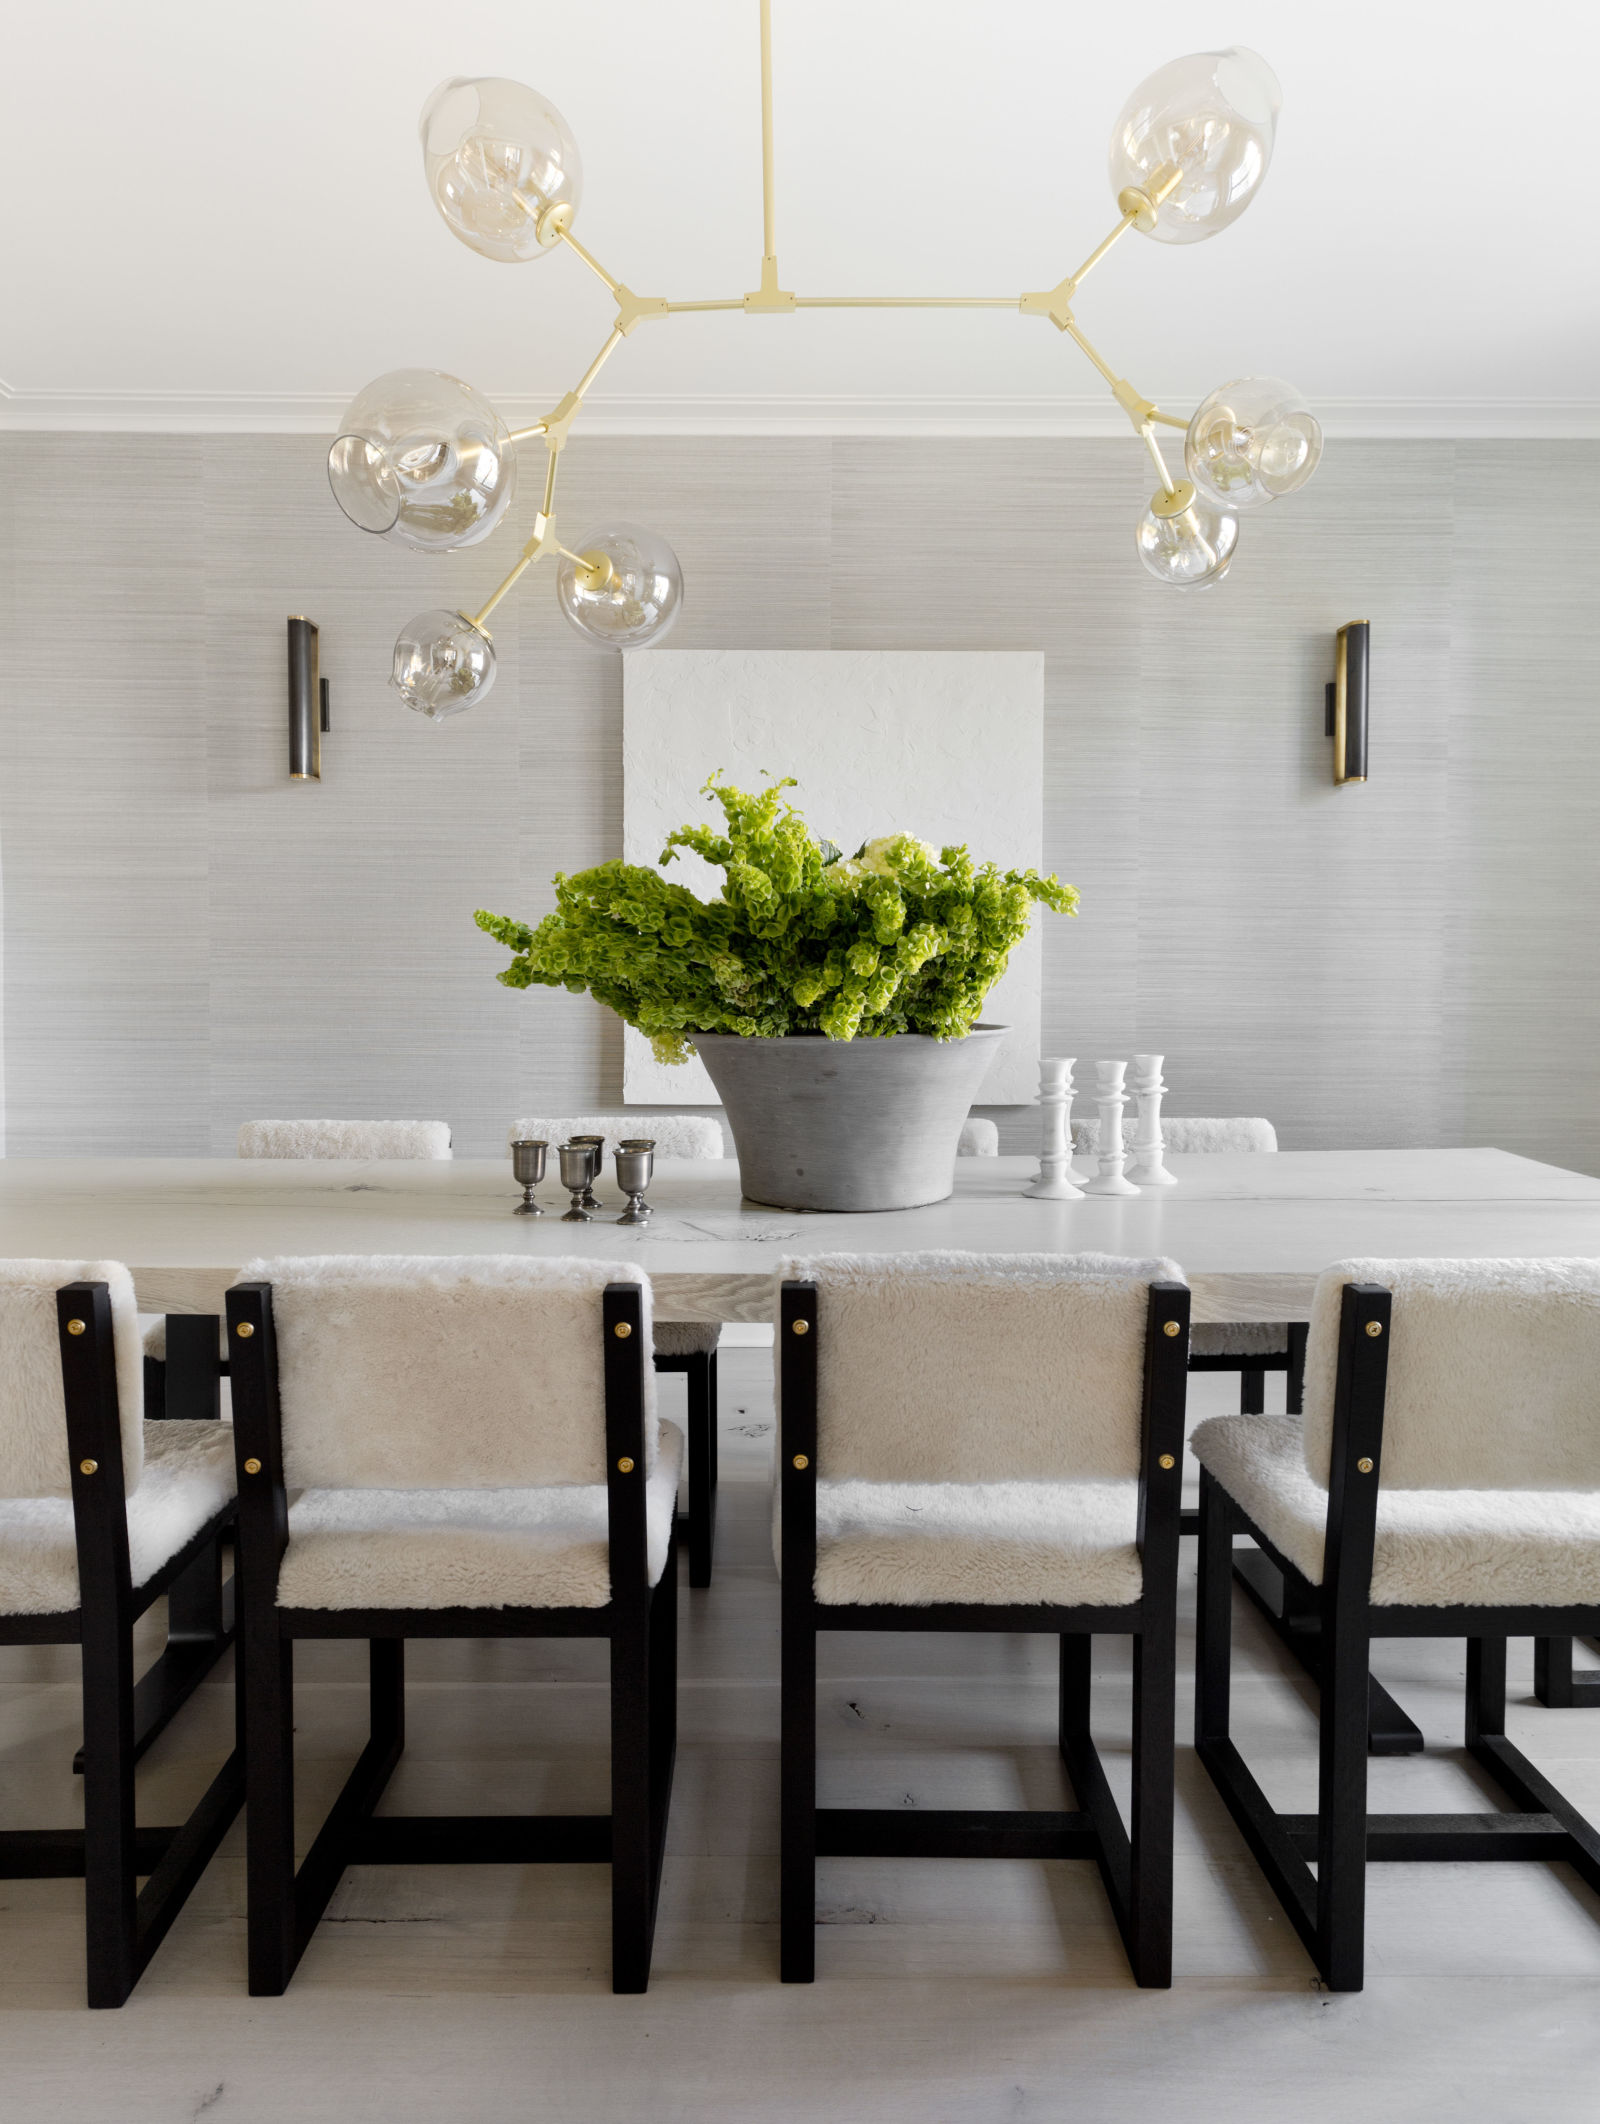 5 incredible interior design tips by elle decor for a chic for White dining room decor